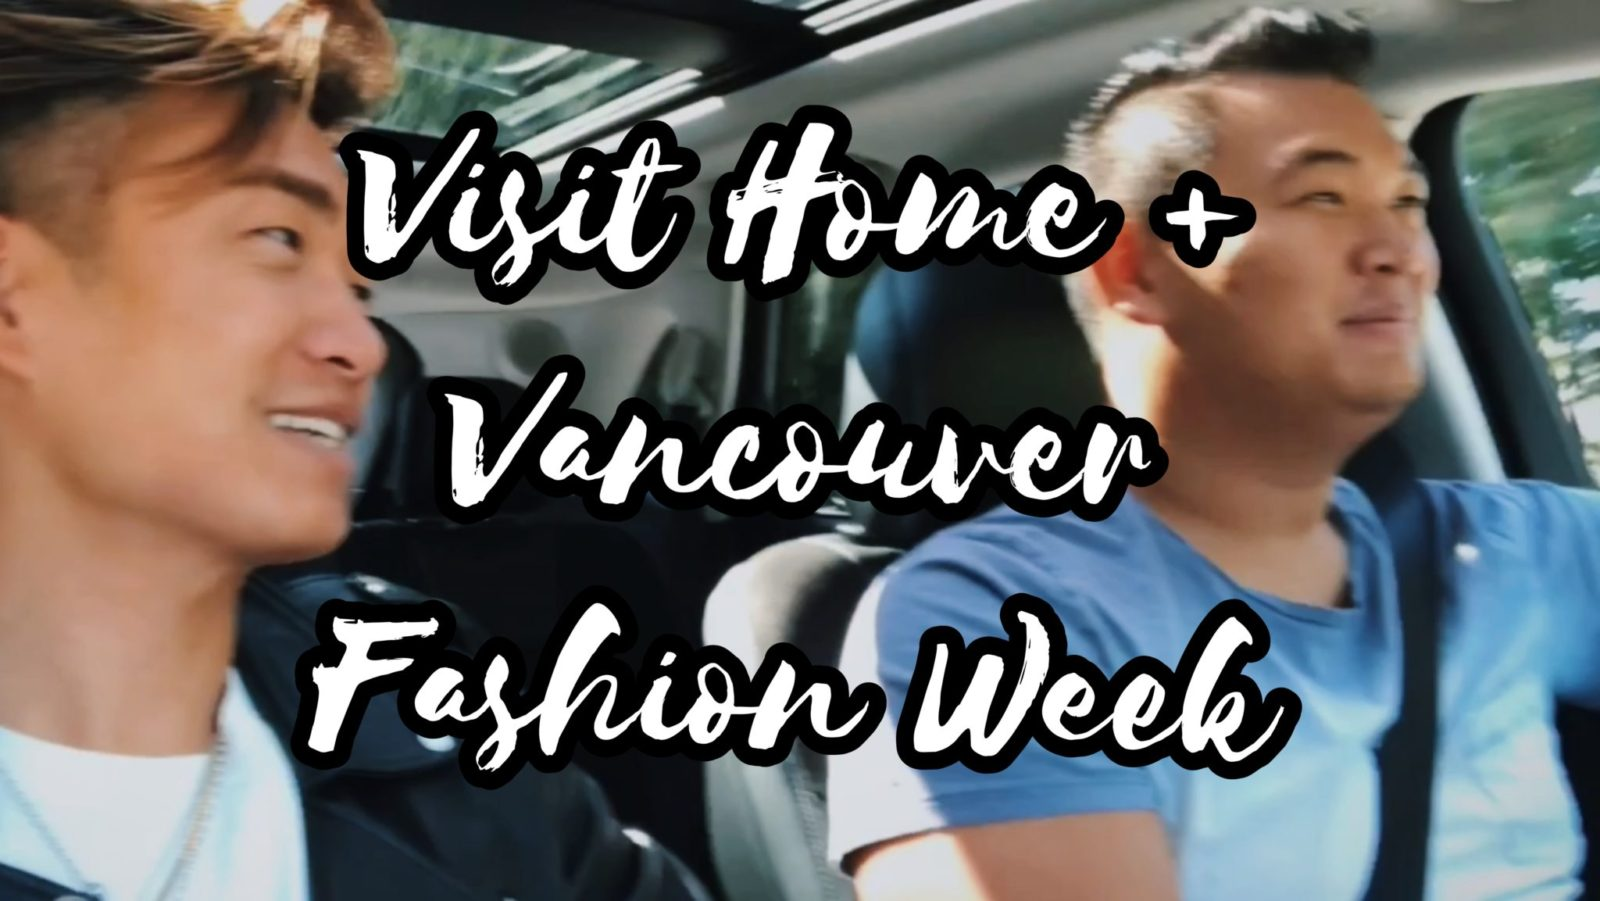 VISIT HOME + VANCOUVER FASHION WEEK